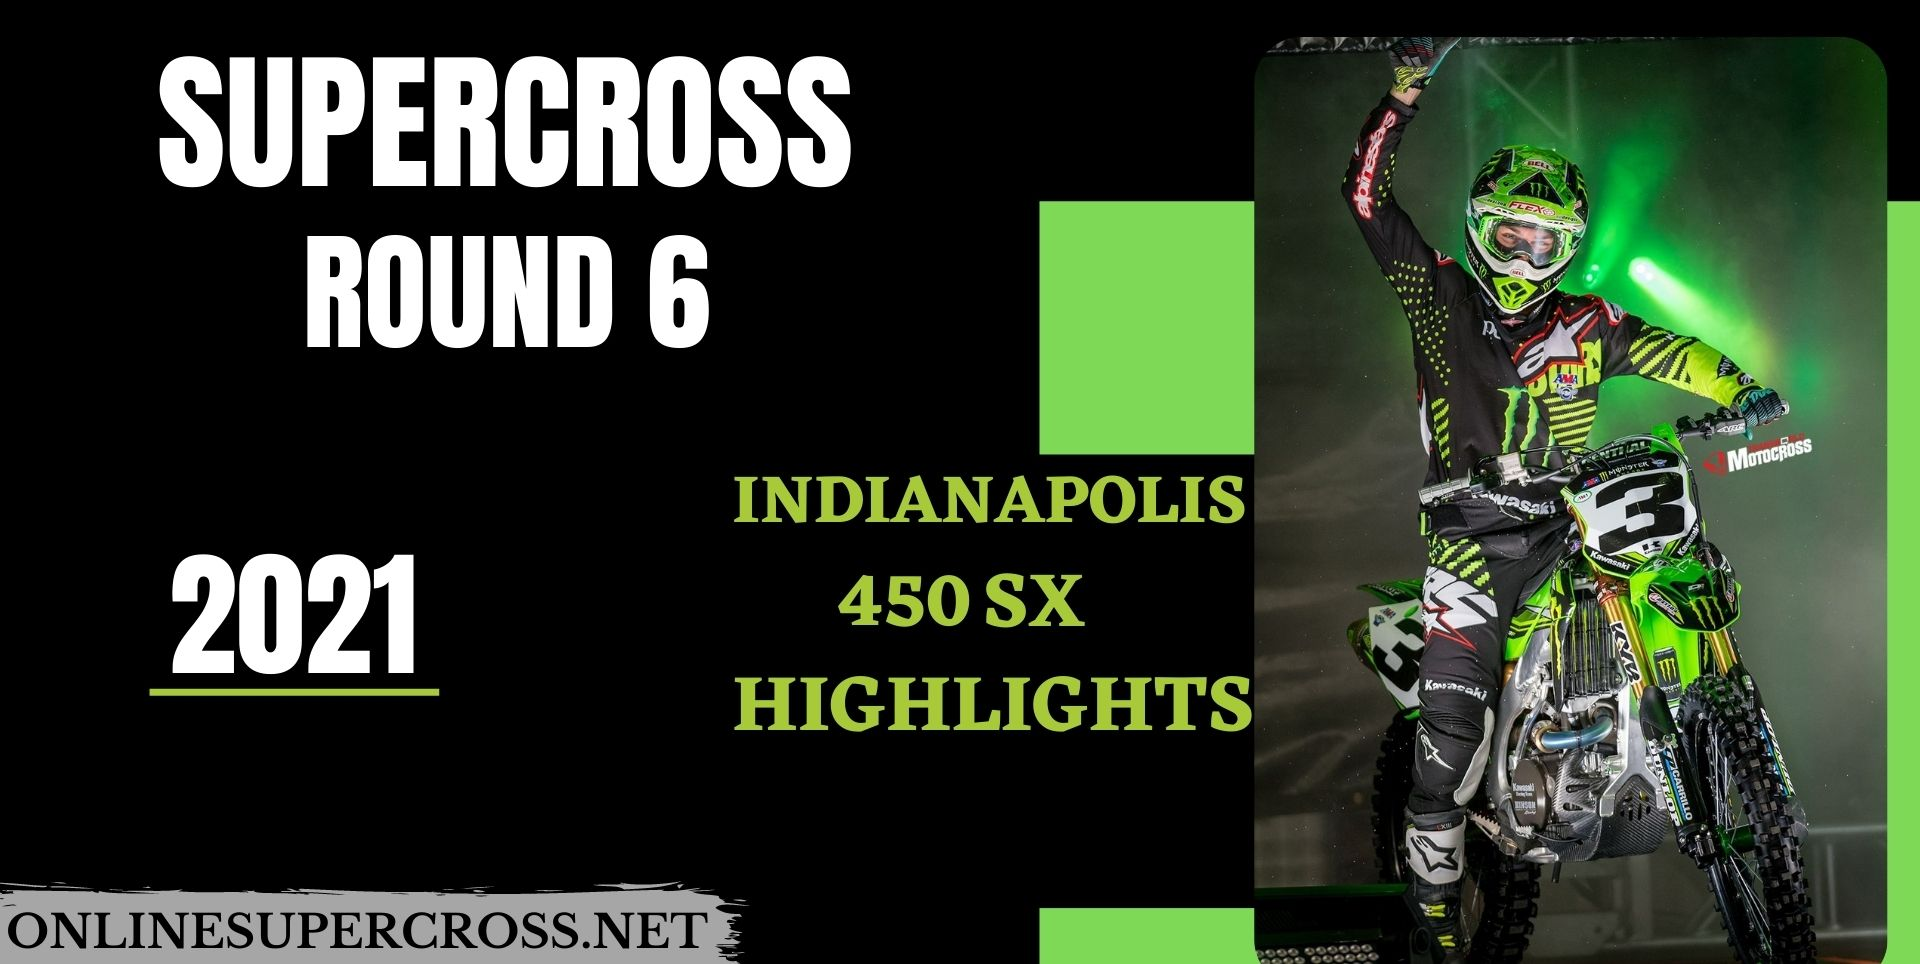 Indianapolis Round 6 Supercross 450SX Highlights 2021